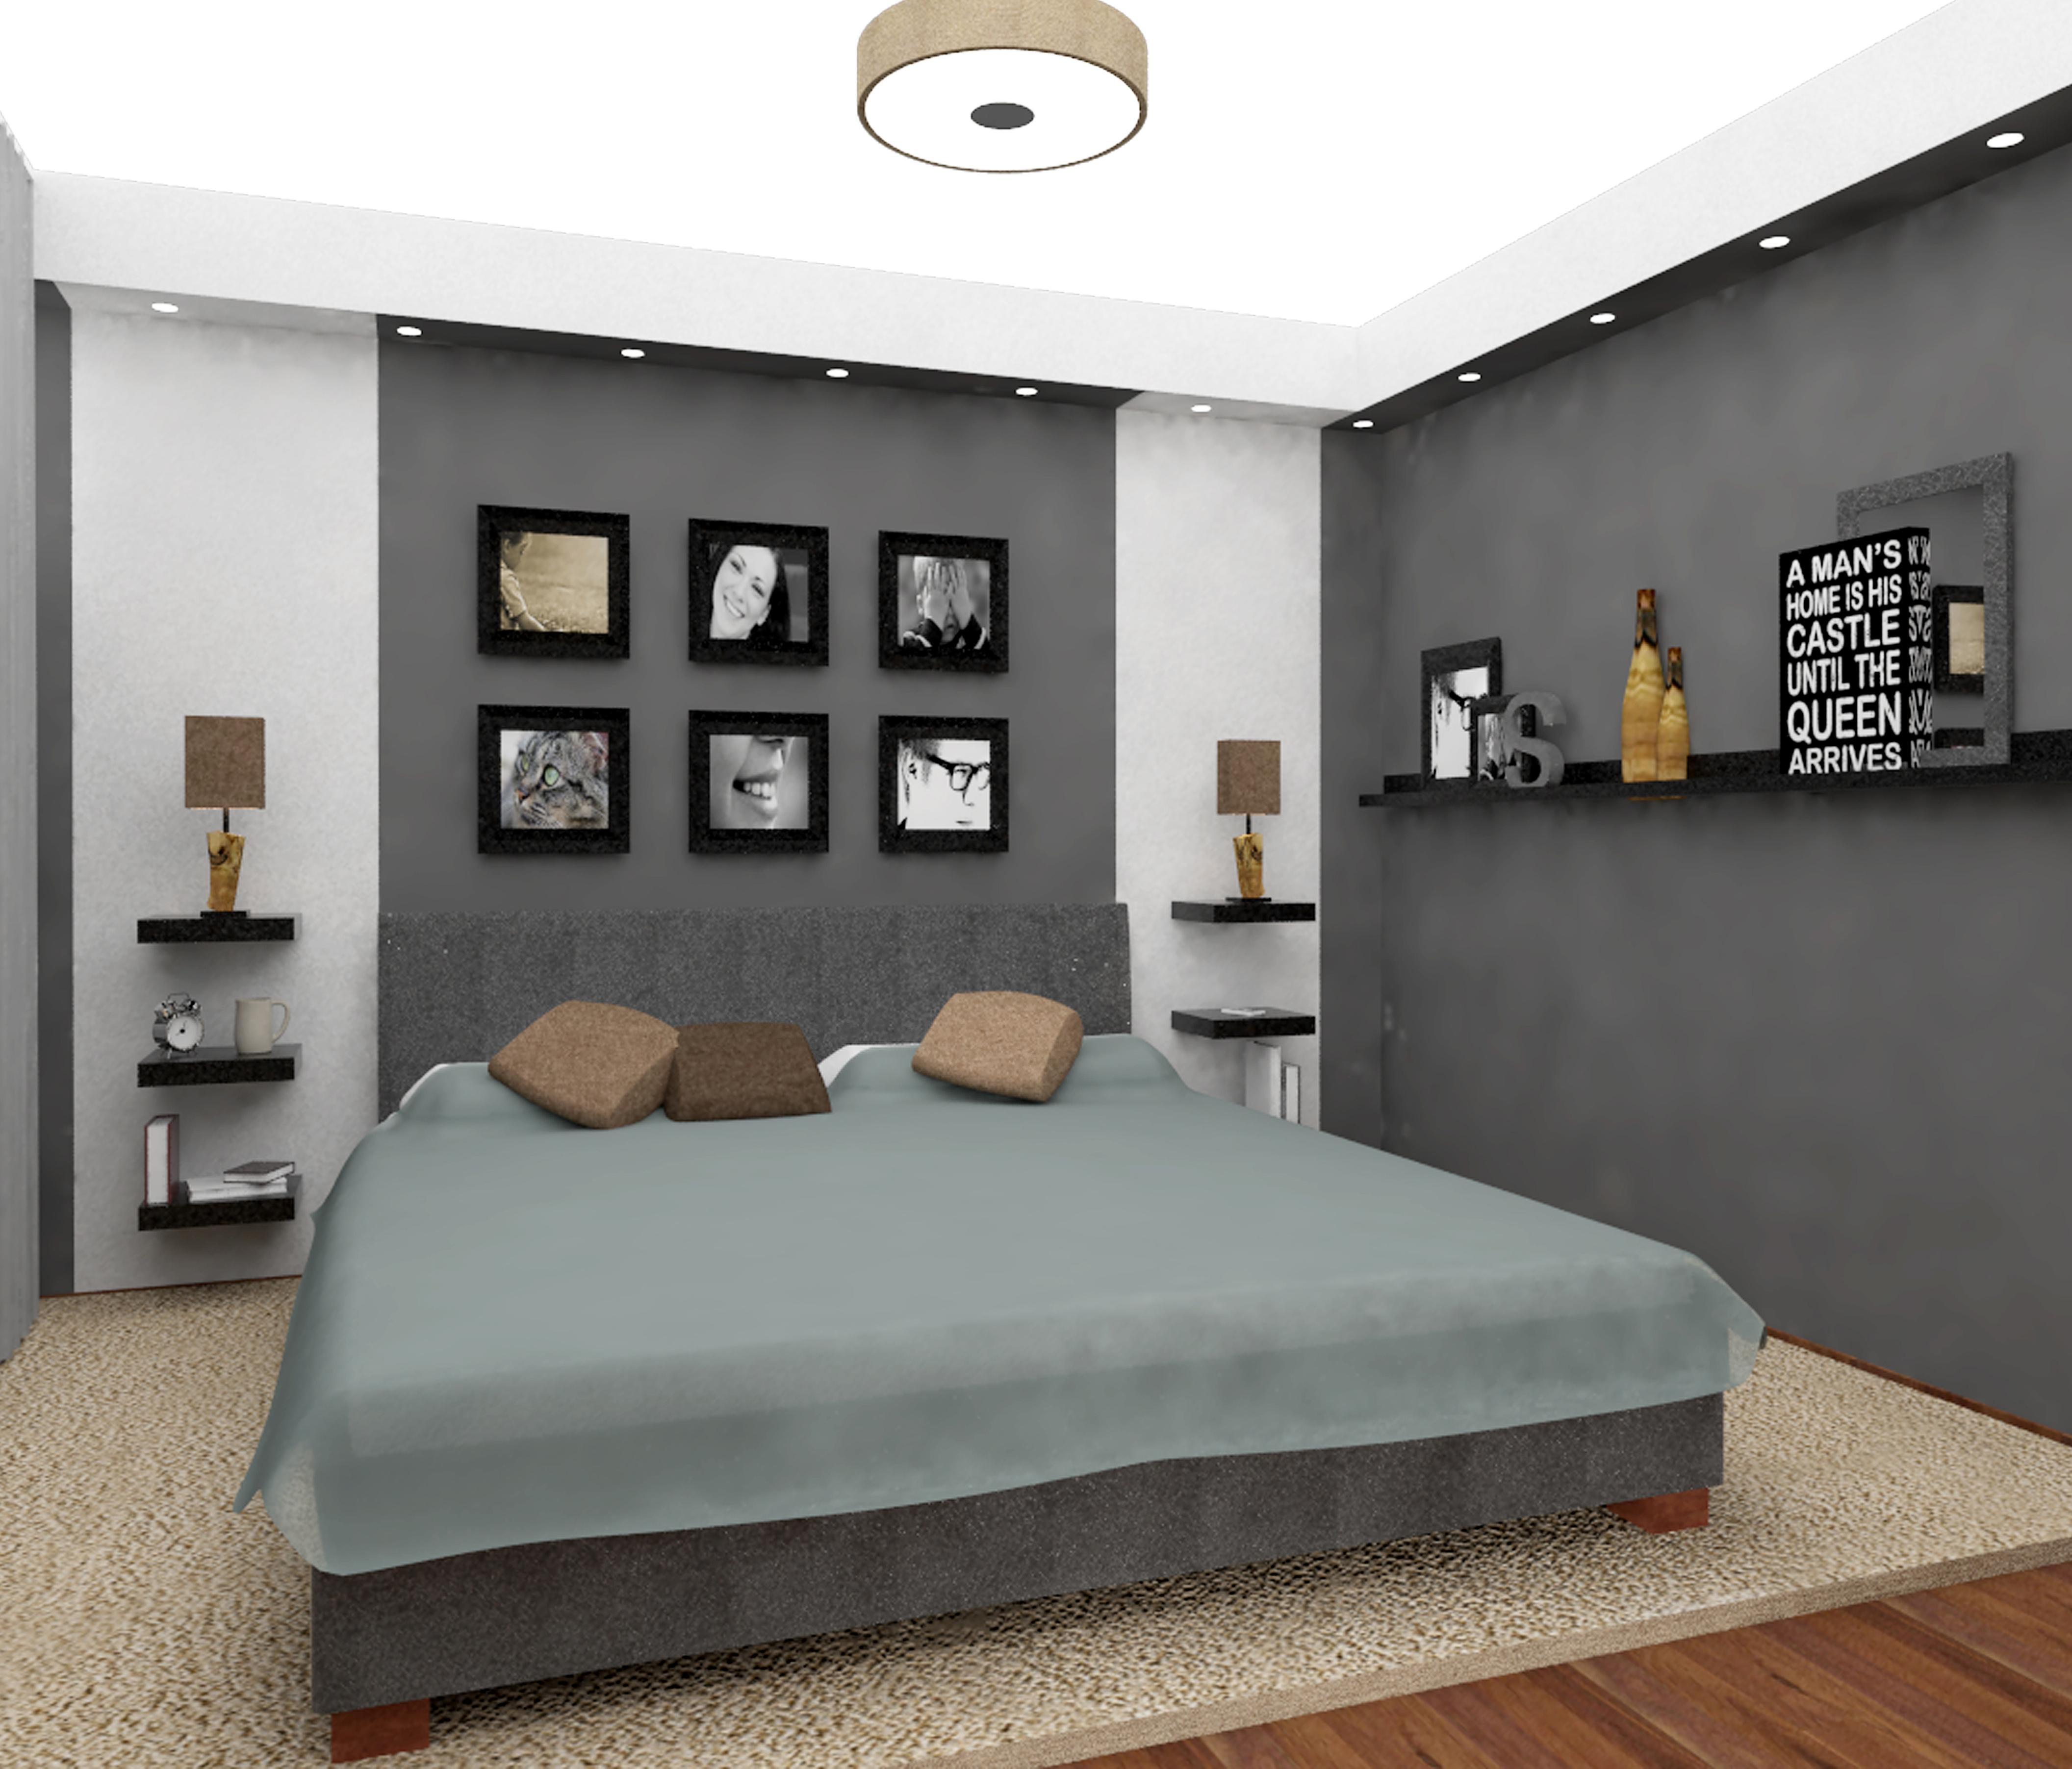 schlafzimmer umbauen bilder ideen couchstyle. Black Bedroom Furniture Sets. Home Design Ideas